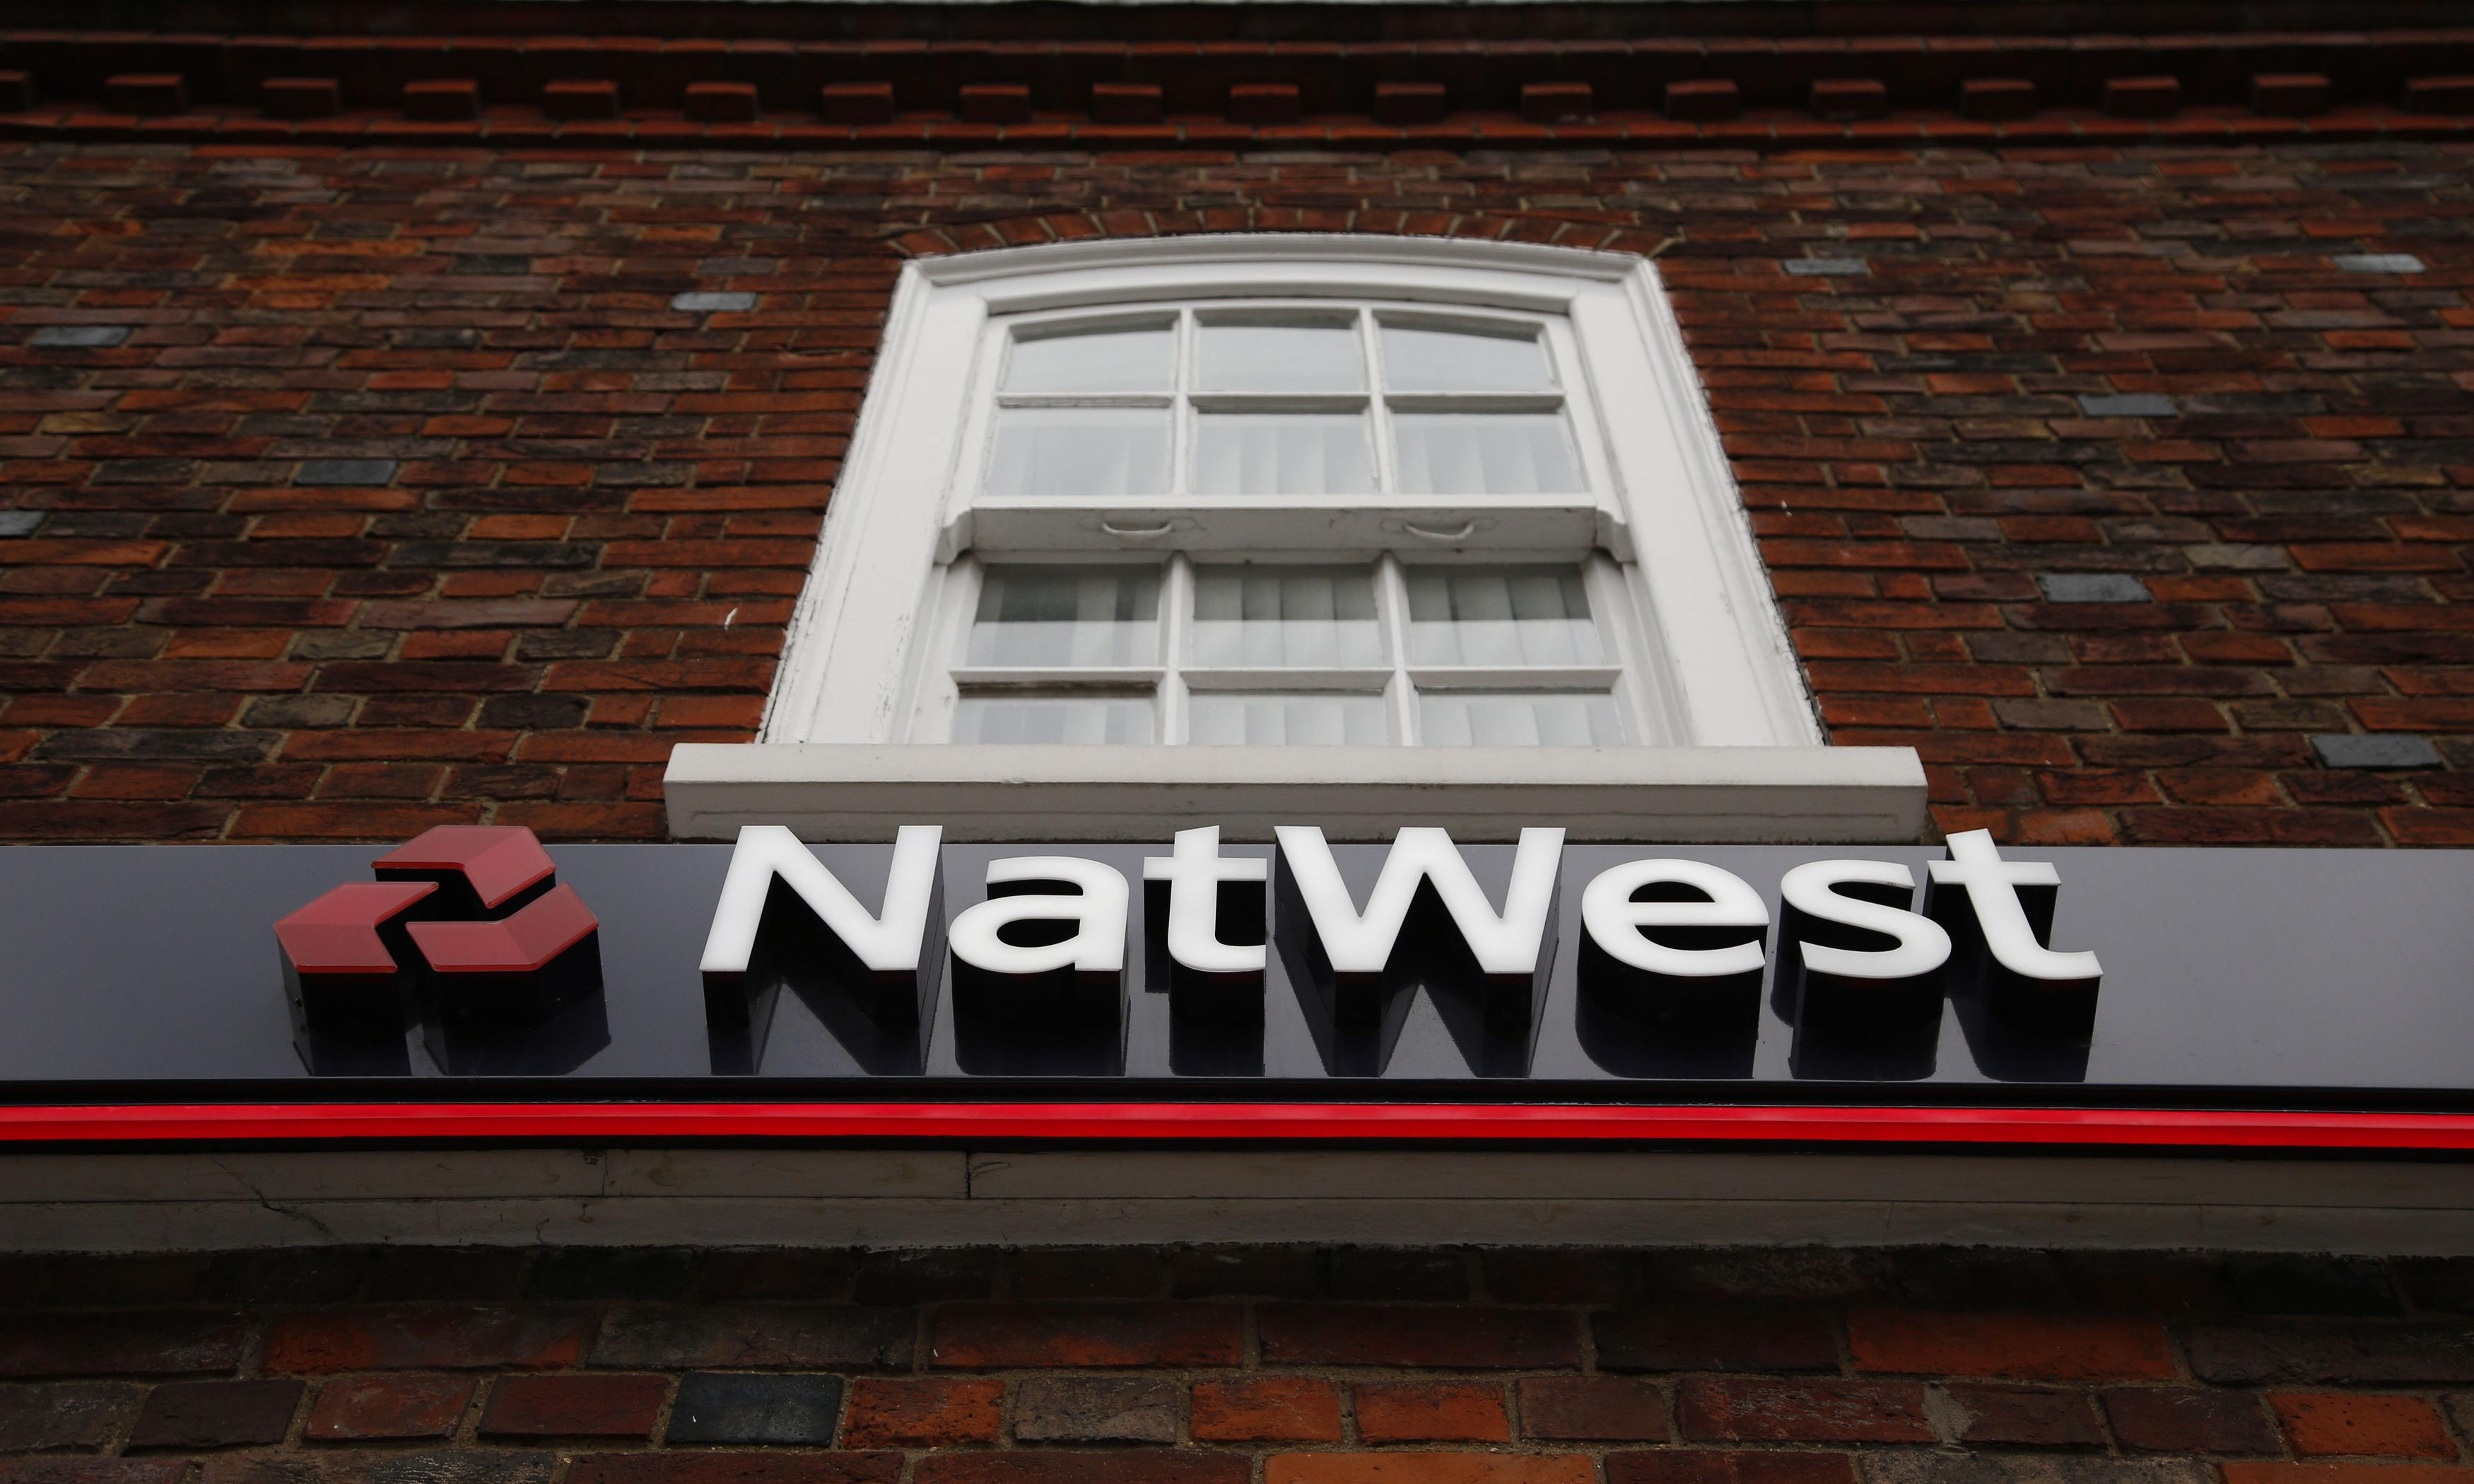 NatWest has frozen me out and won't let me move accounts